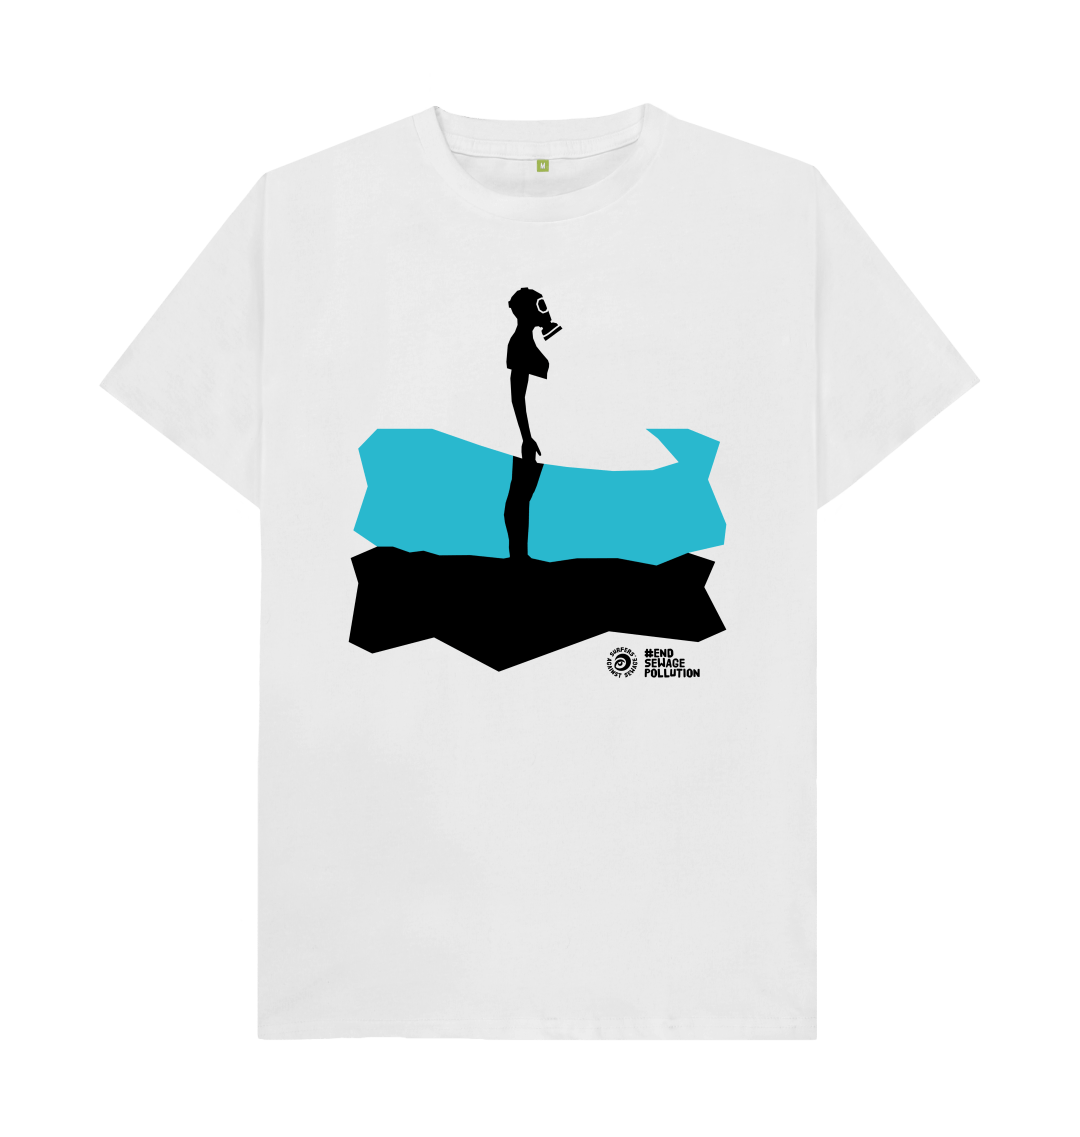 T shirt showing surfing in a gas mask